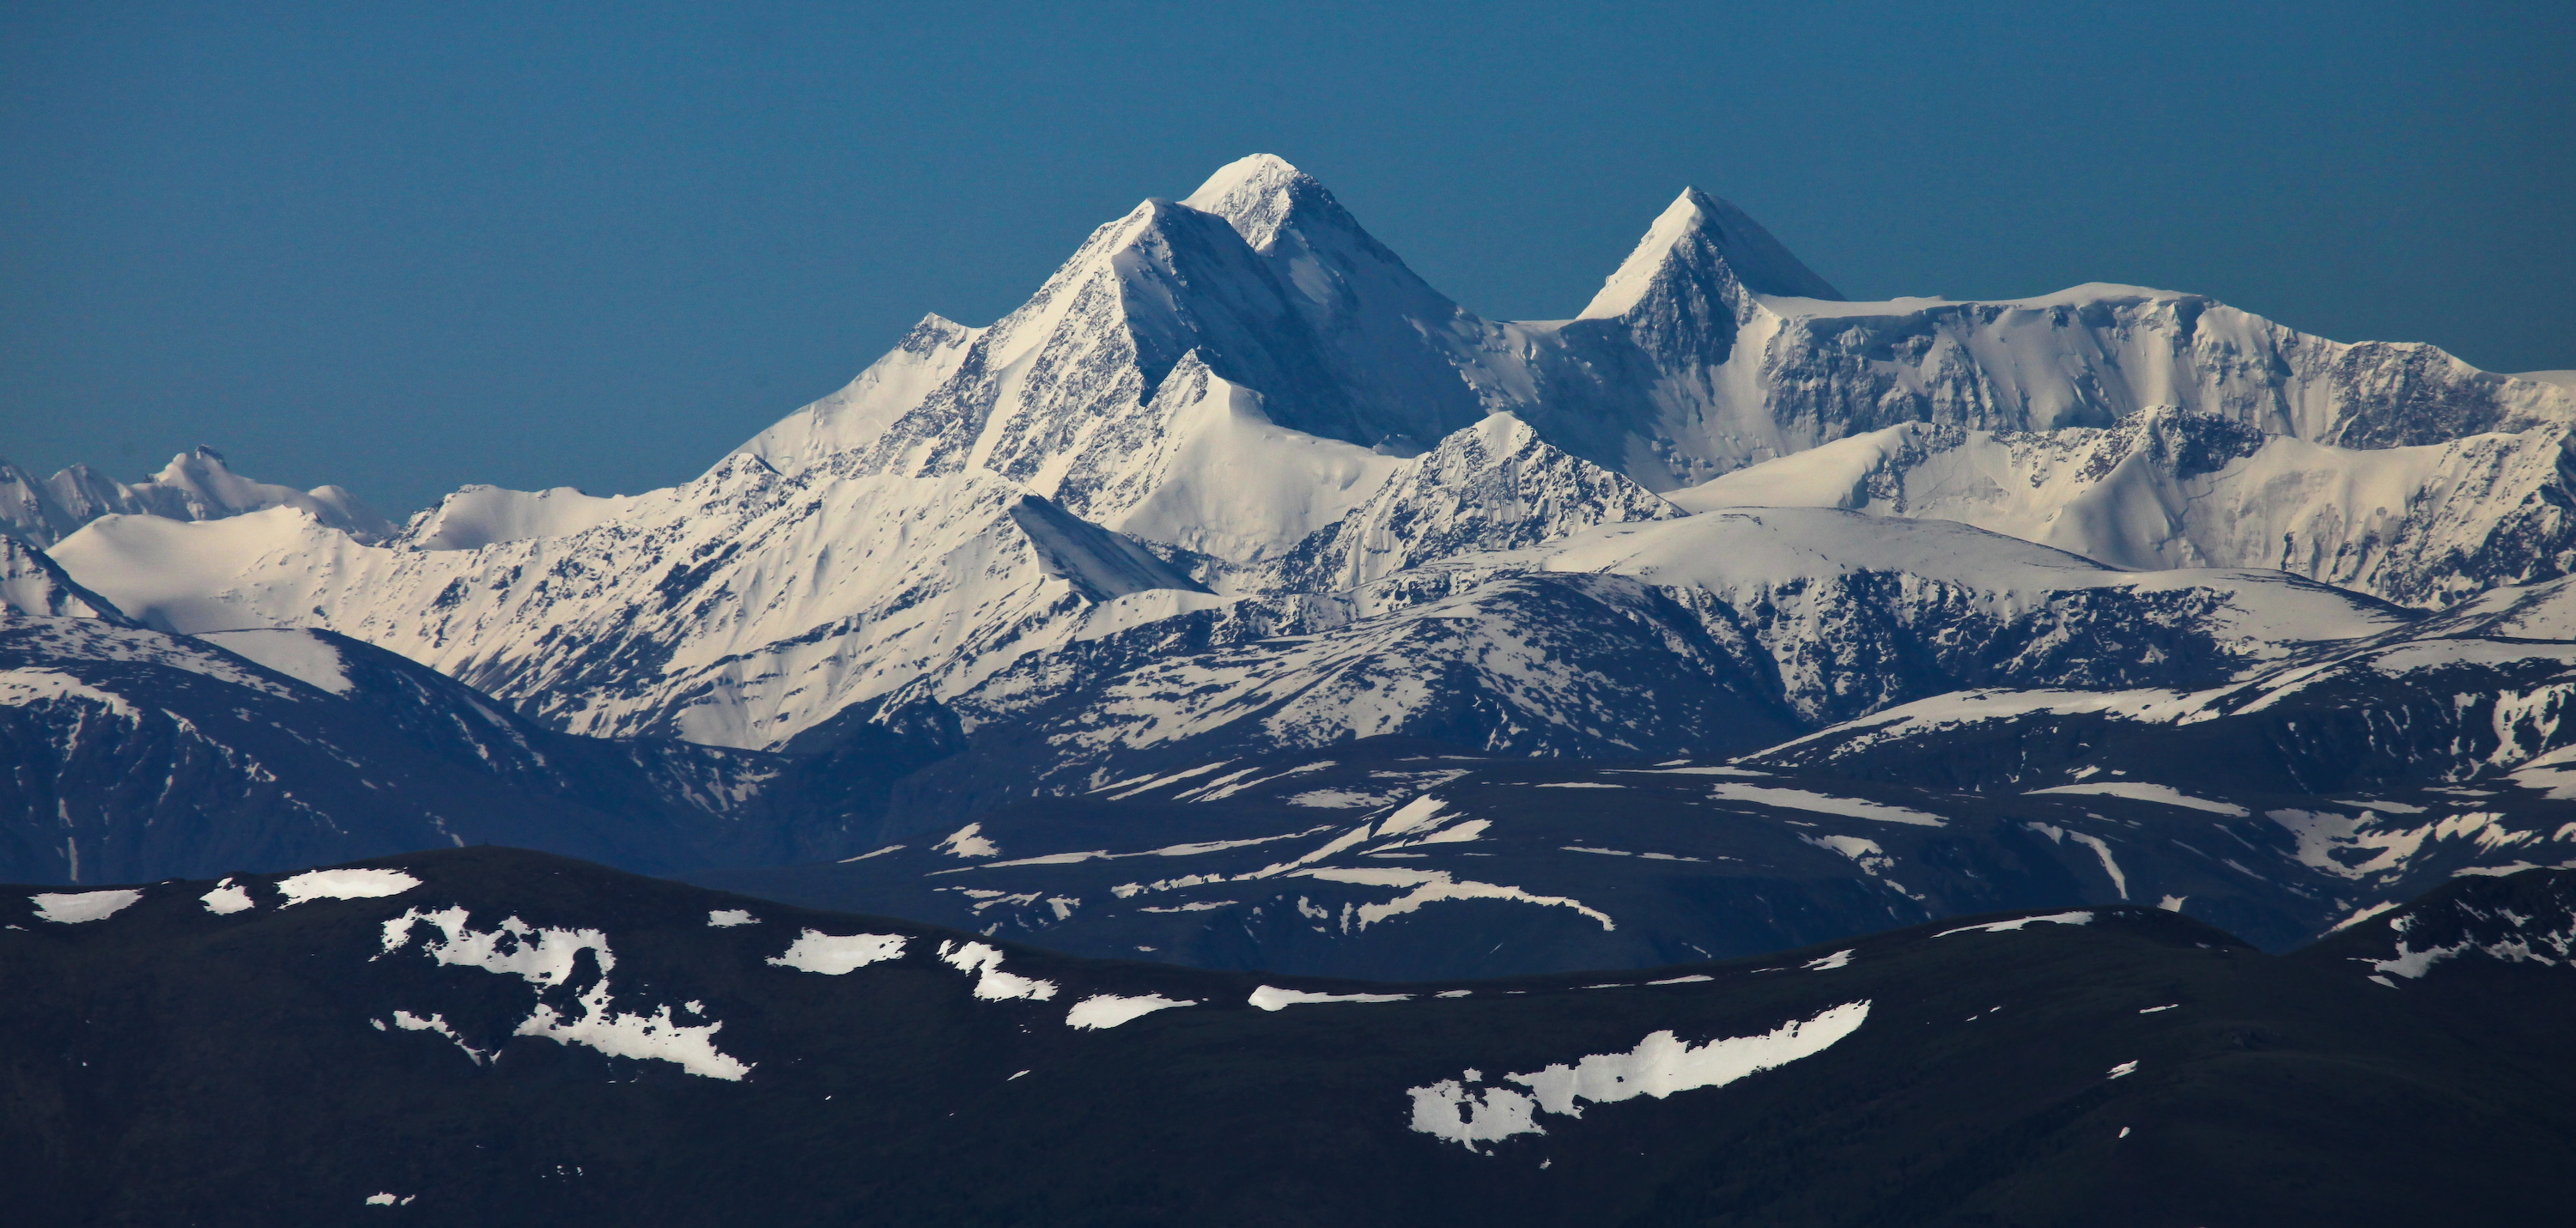 View of the Belukha mountain. Photo courtesy of Alexey Nagaev.